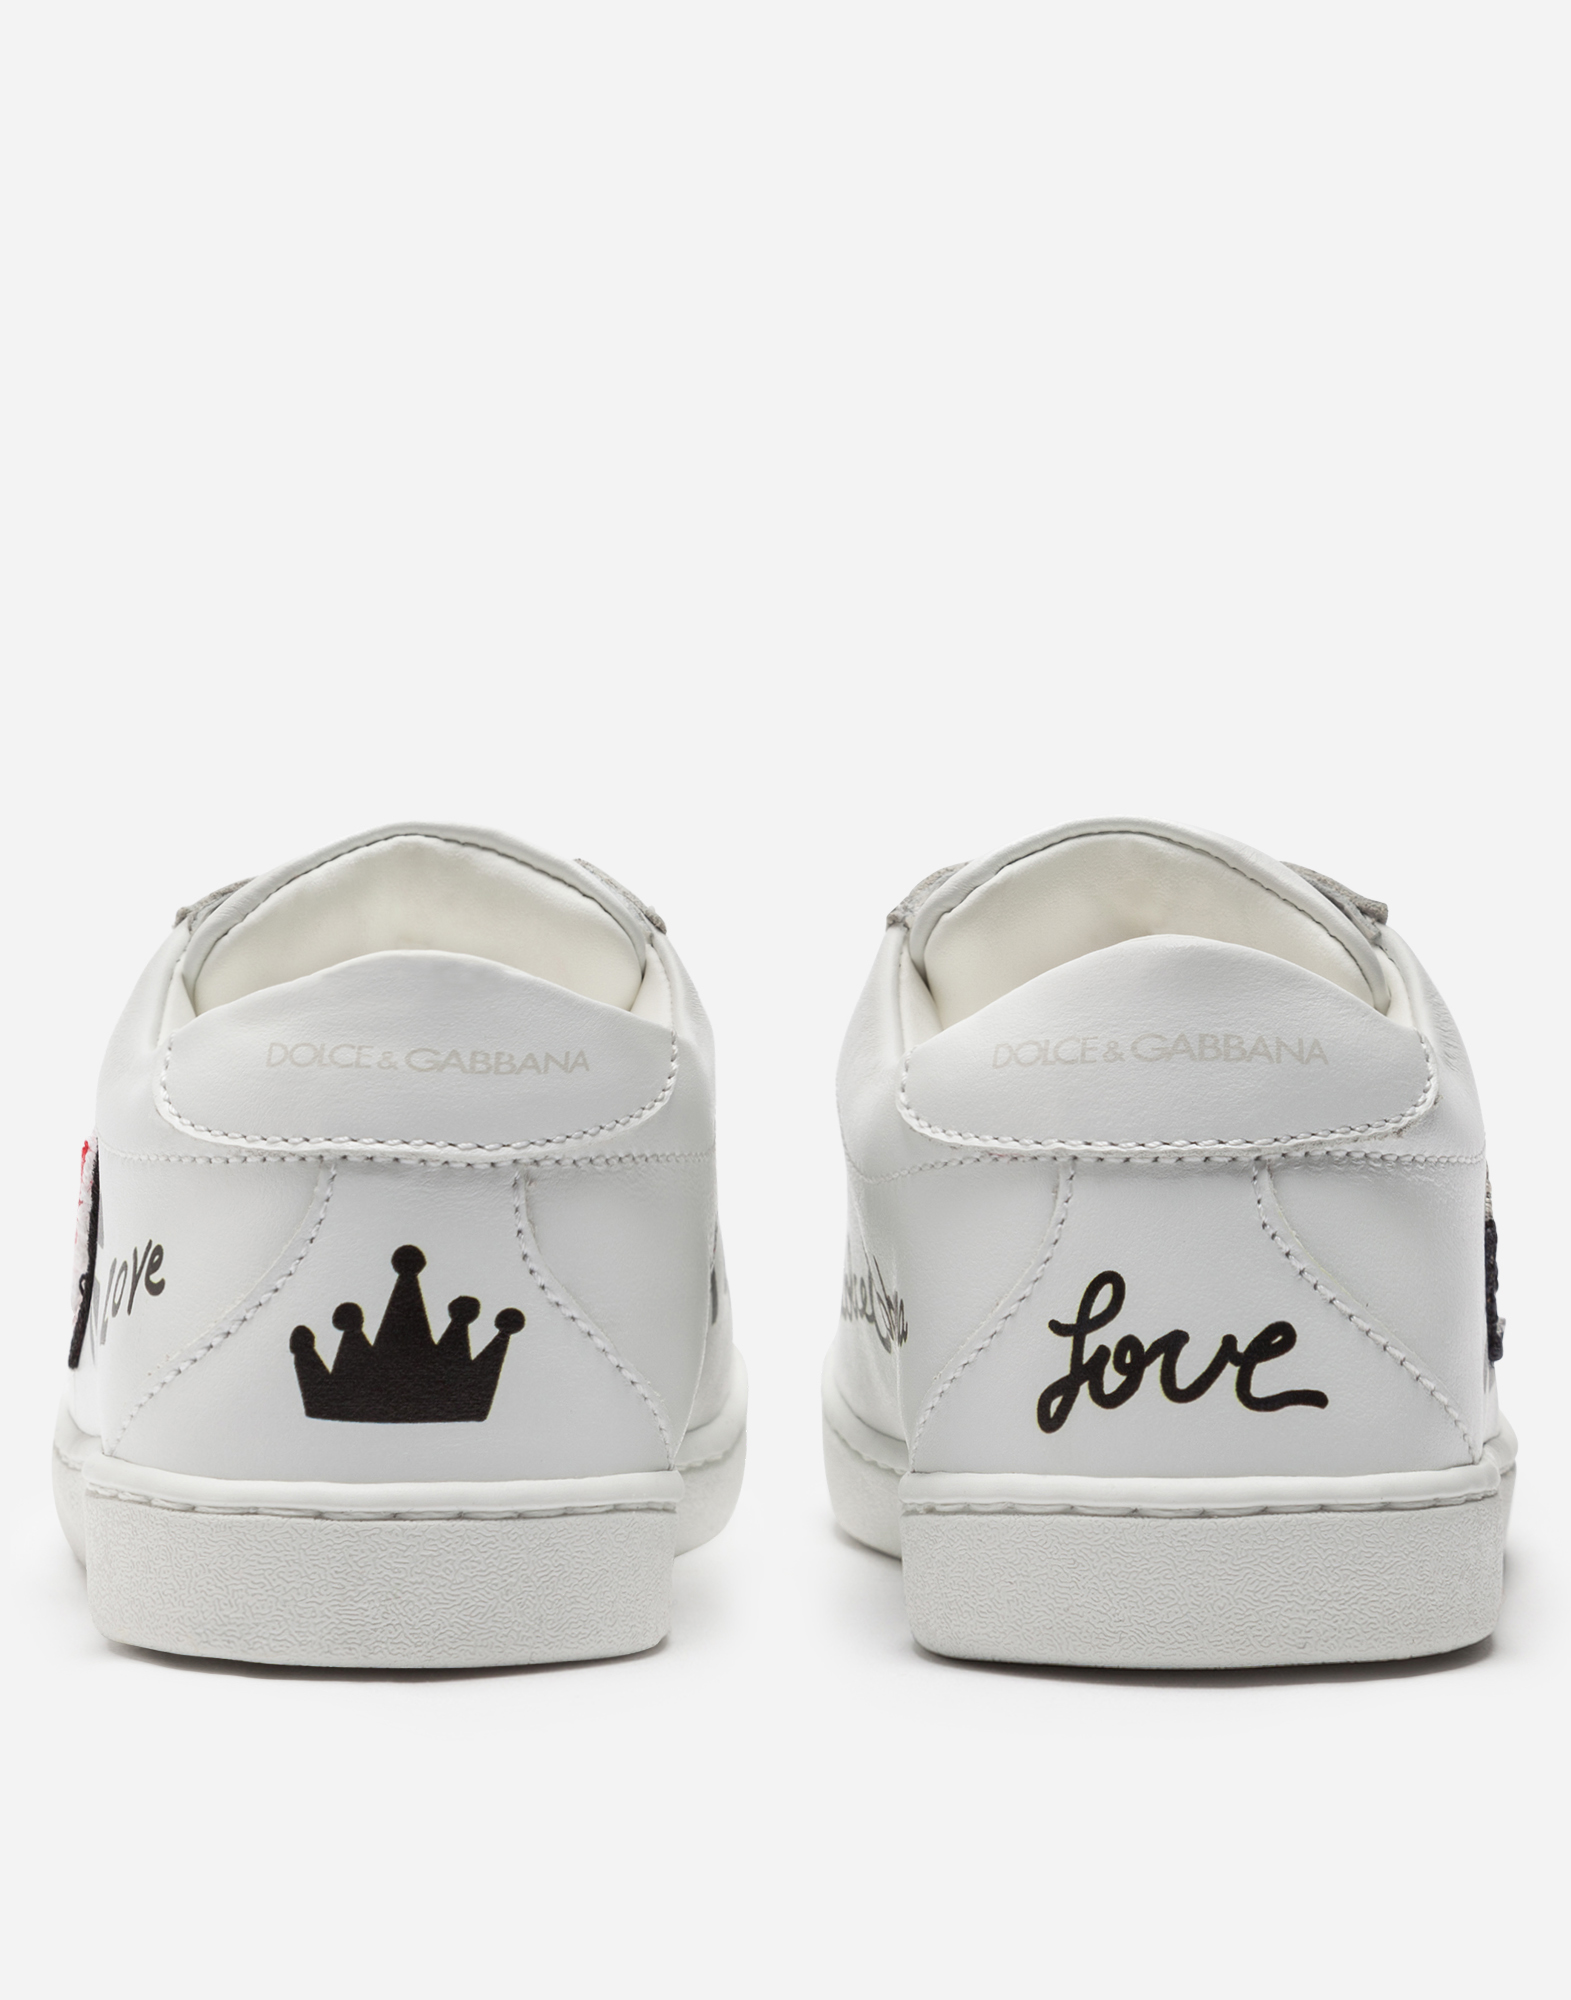 Dolce&Gabbana LEATHER SNEAKERS WITH PRINT